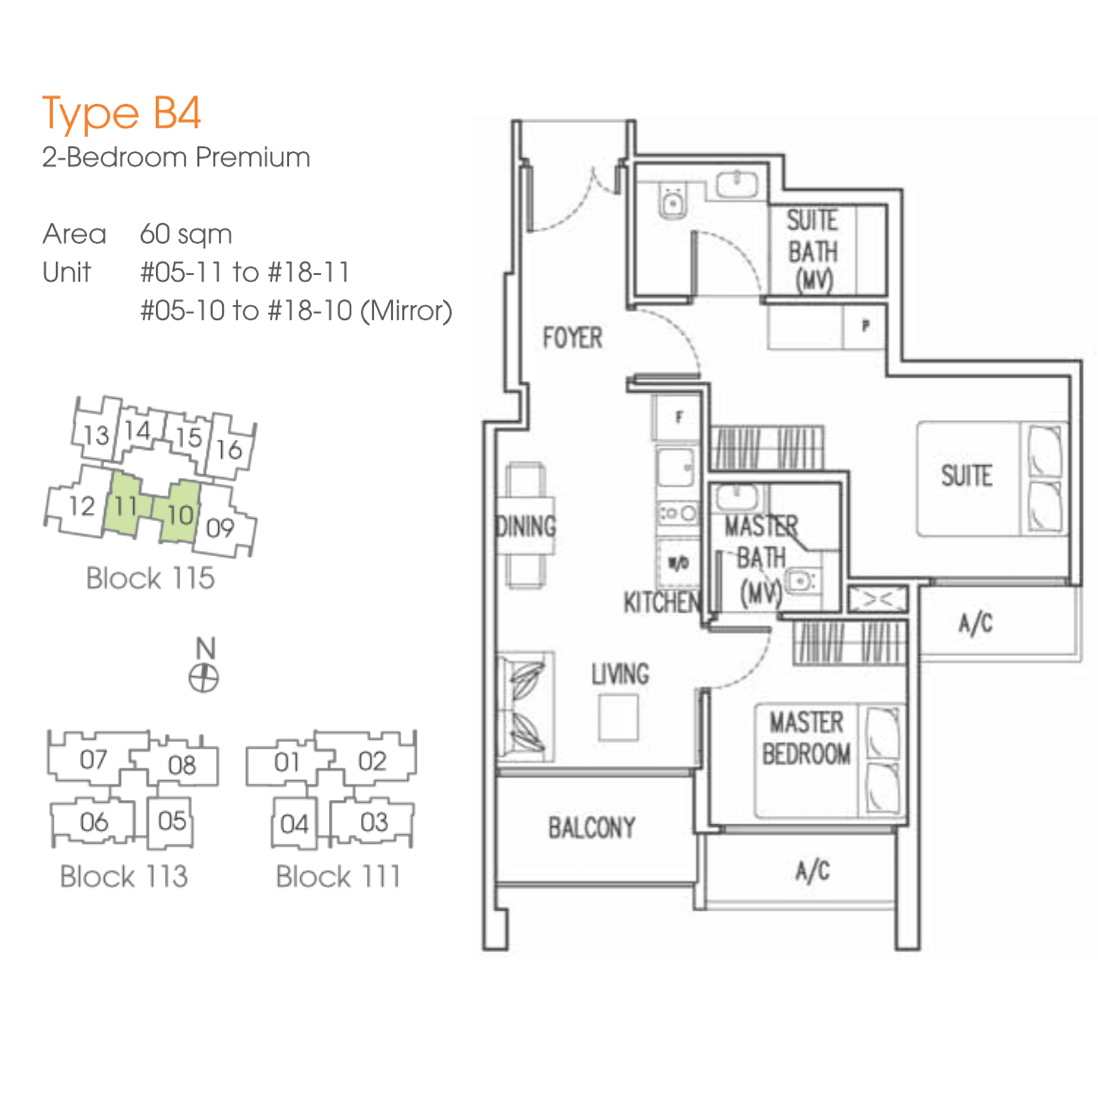 New Launches - Trilive - Floor Plan B4 60sqm 2-Bedroom Premium